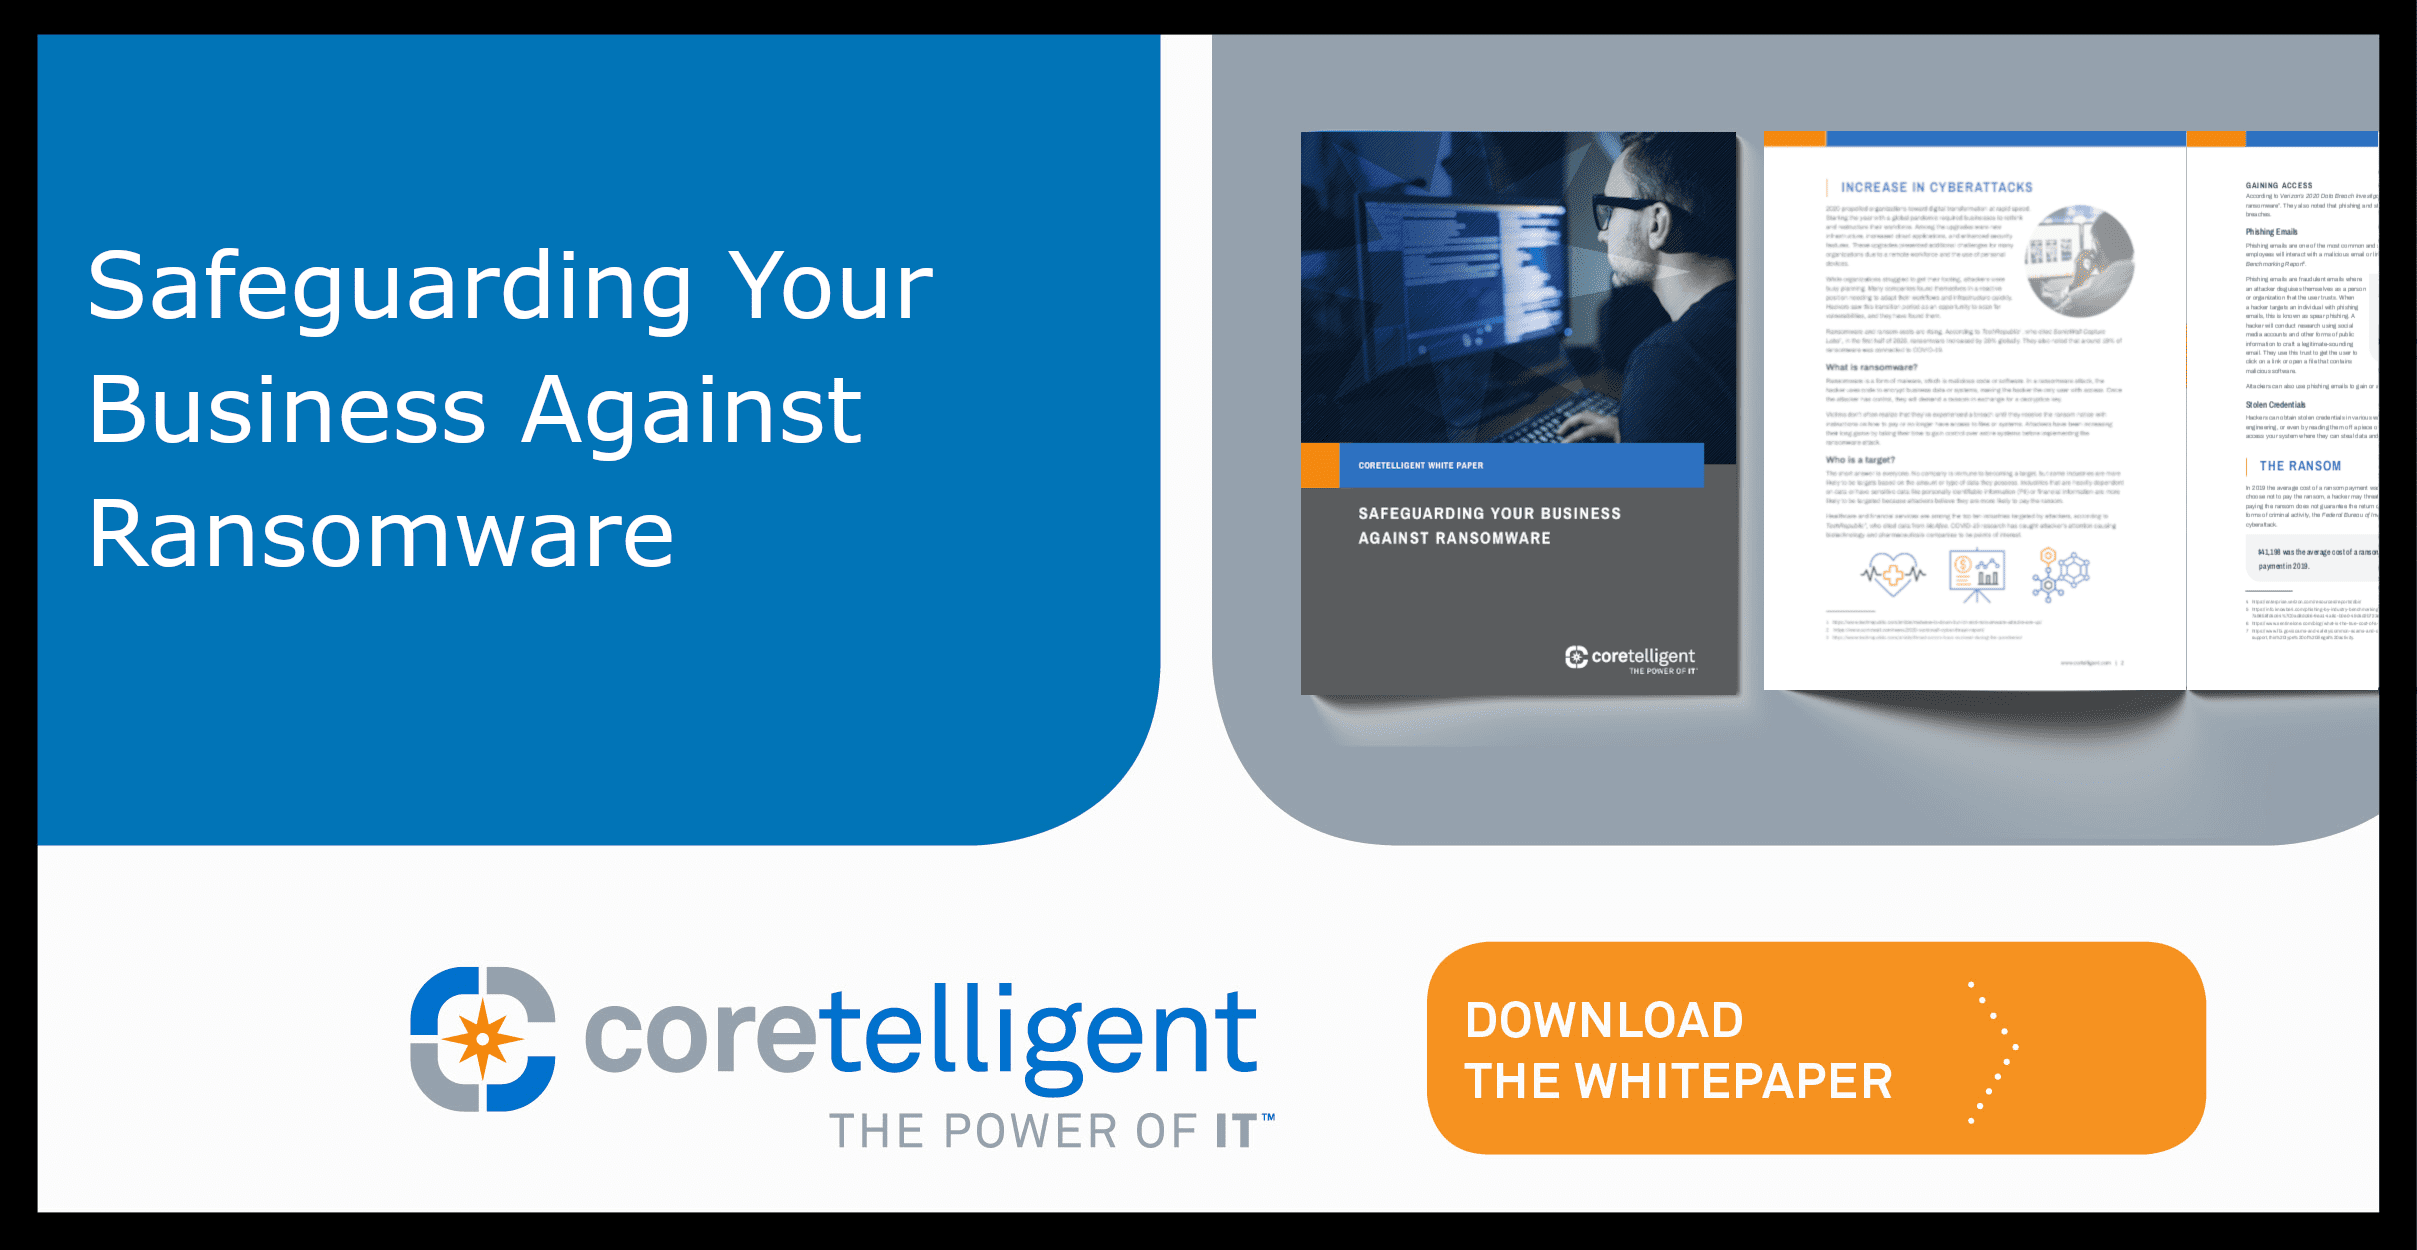 Safeguarding Your Business Against Ransomware Whitepaper